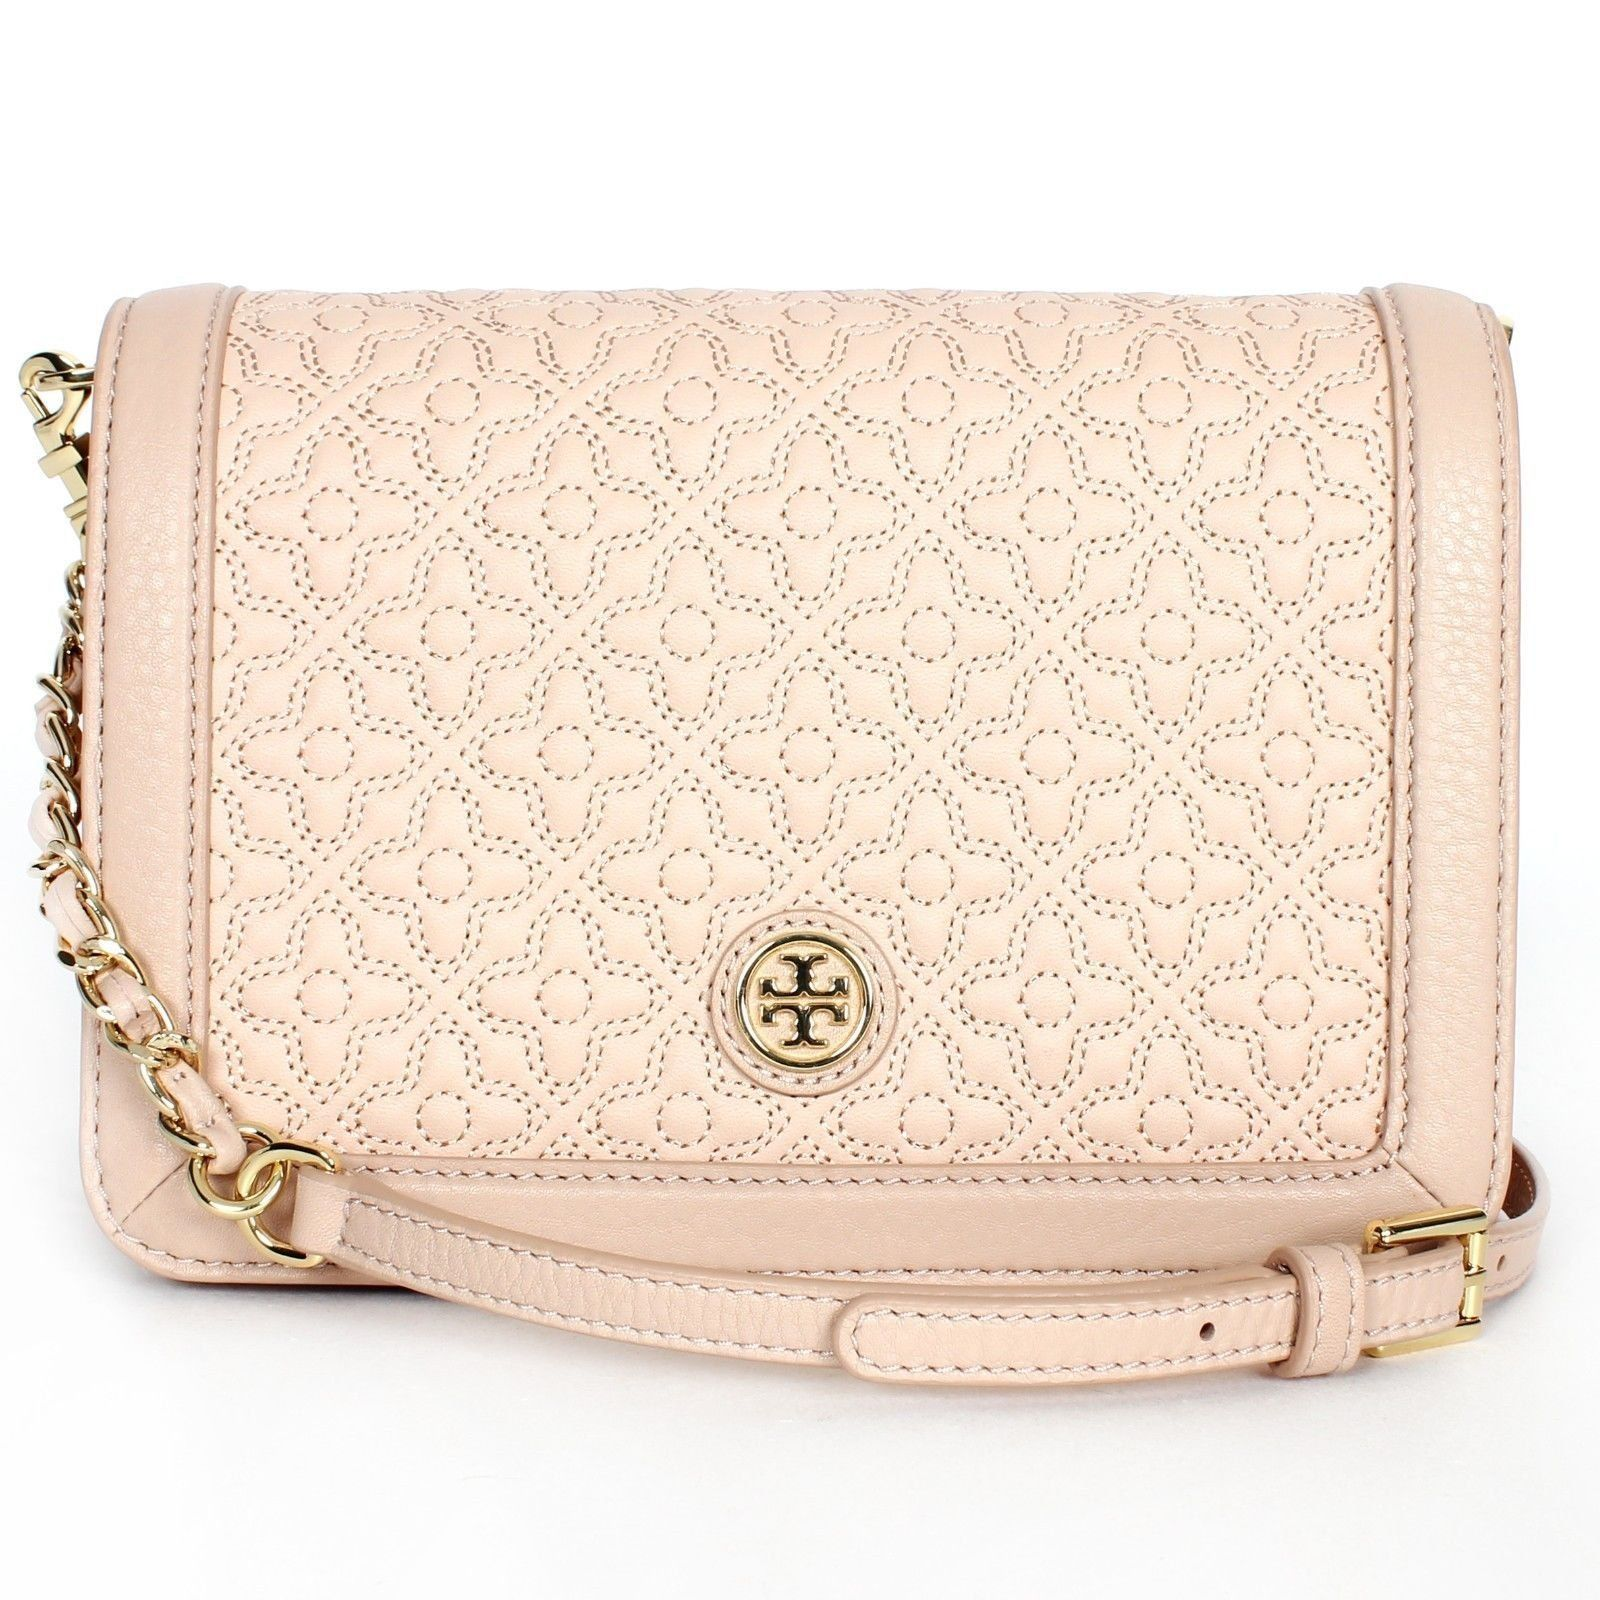 10f0cbbcd08 S l1600. S l1600. Previous. BRAND NEW TORY BURCH 46182 LIGHT OAK 205 BRYANT  QUILTED CROSS-BODY HANDBAG PURSE